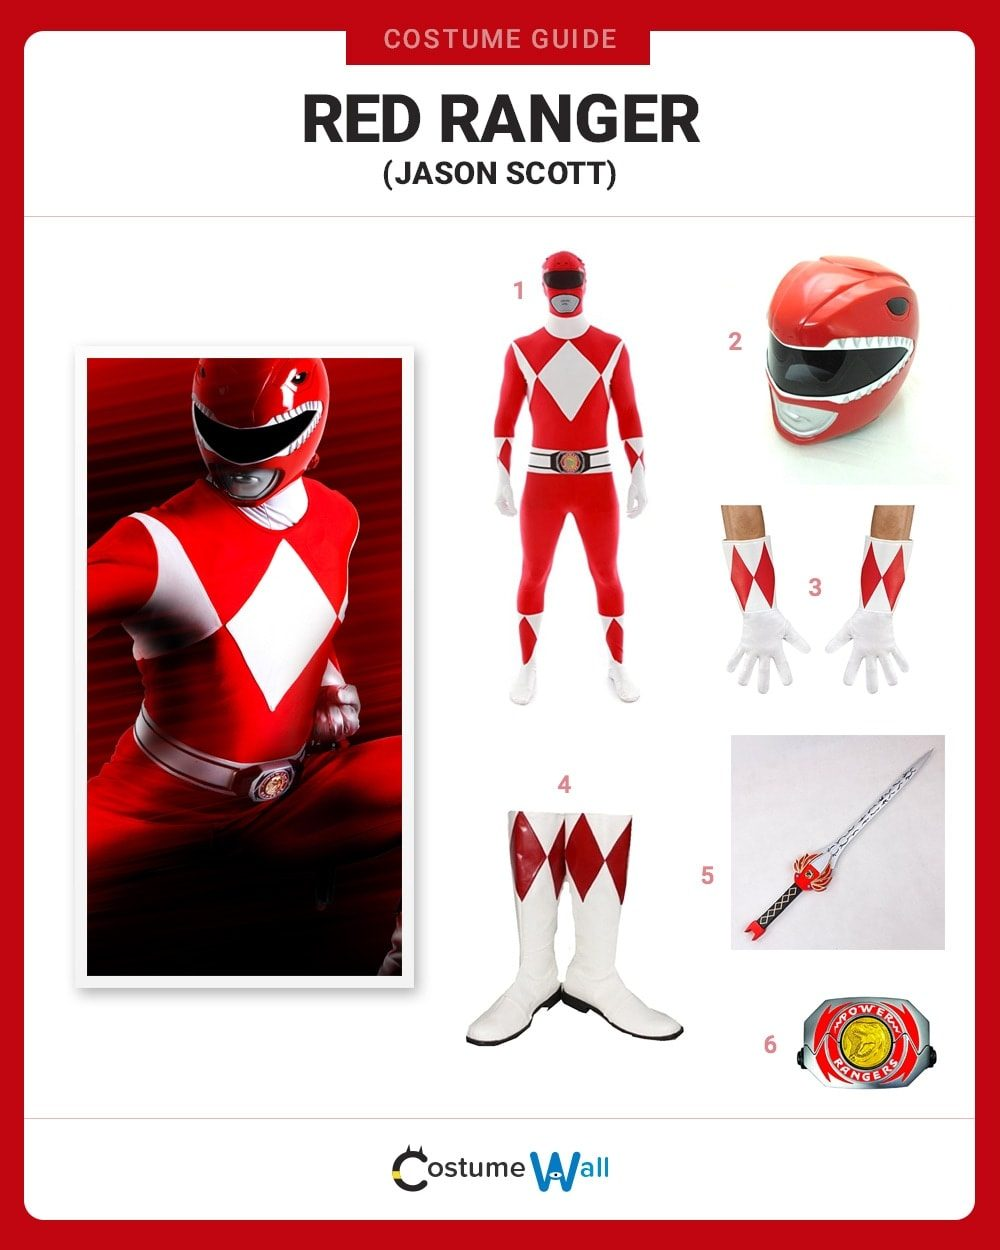 Red Ranger Costume Guide